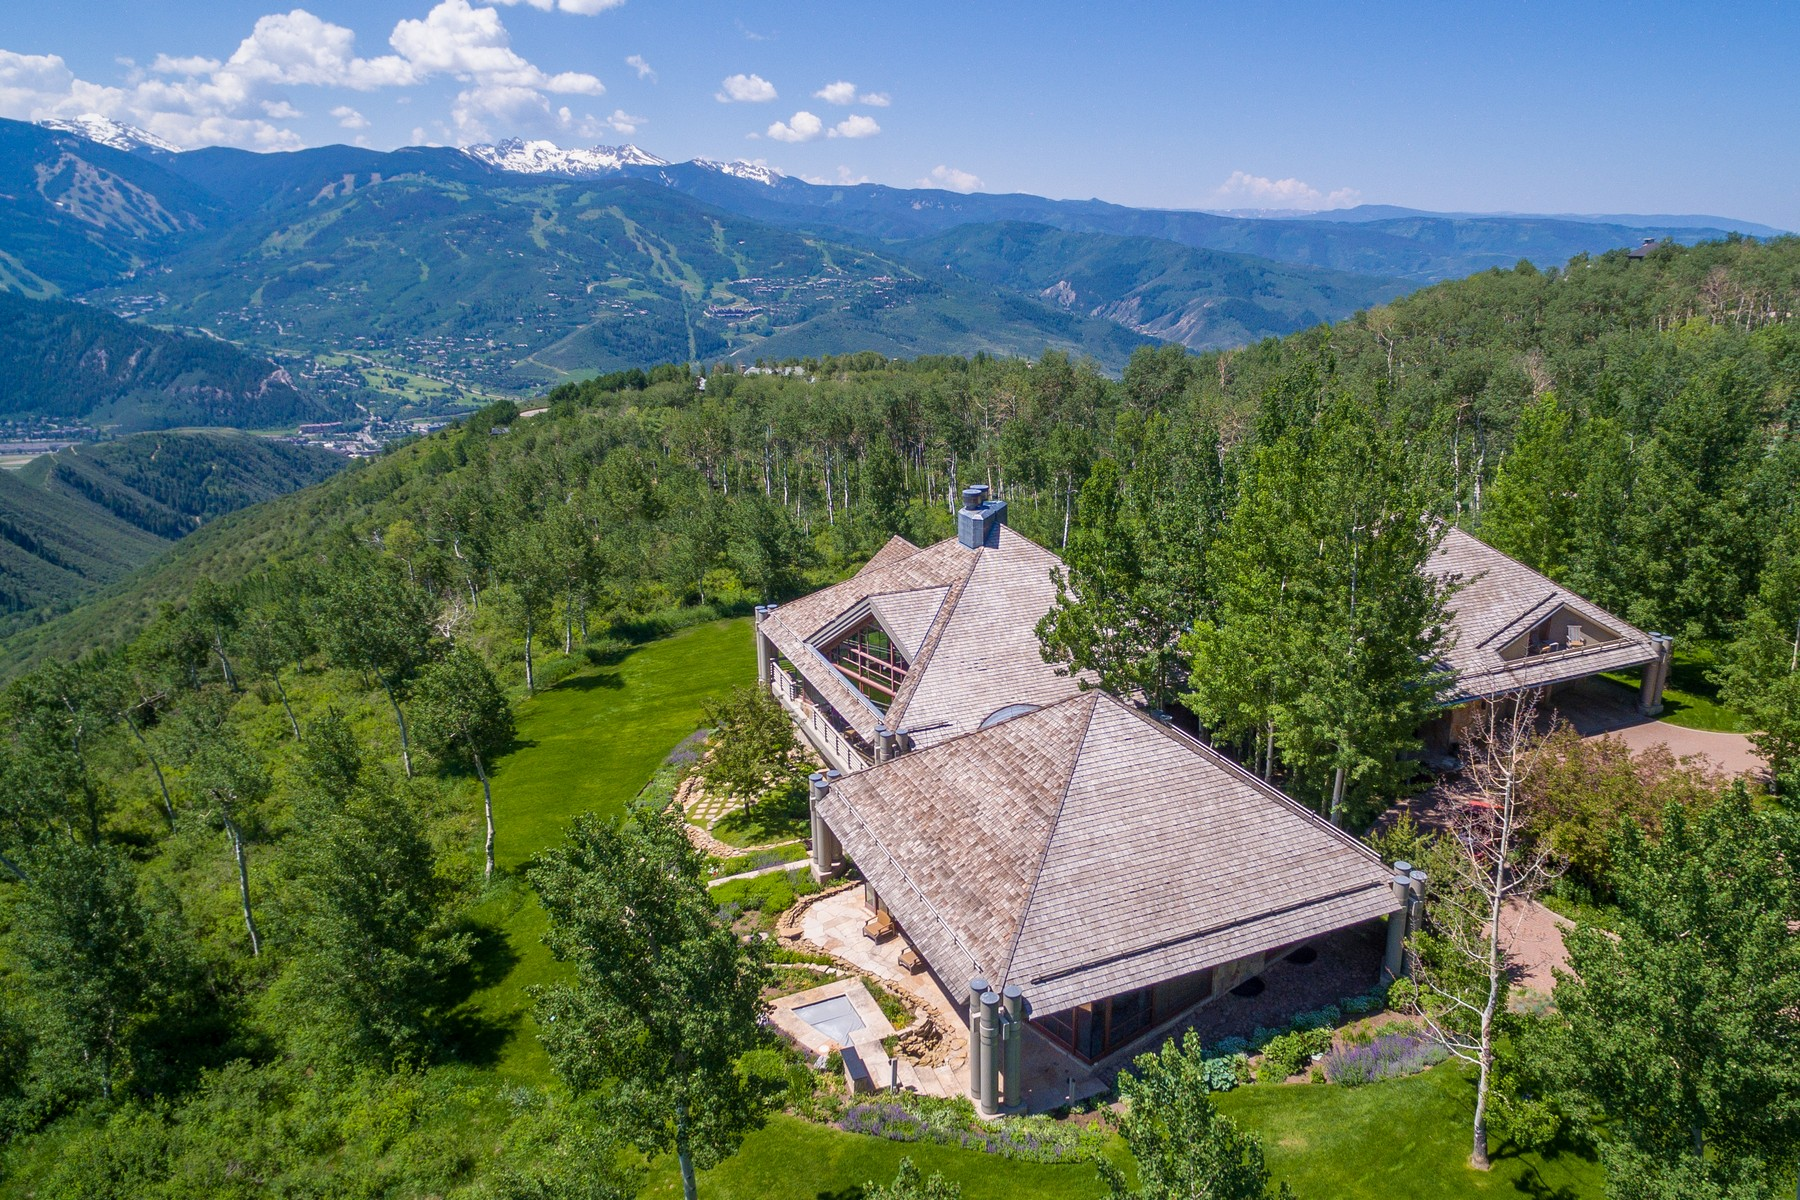 Maison unifamiliale pour l Vente à 56 Rose Crown Mountain Star, Avon, Colorado, 81620 États-Unis